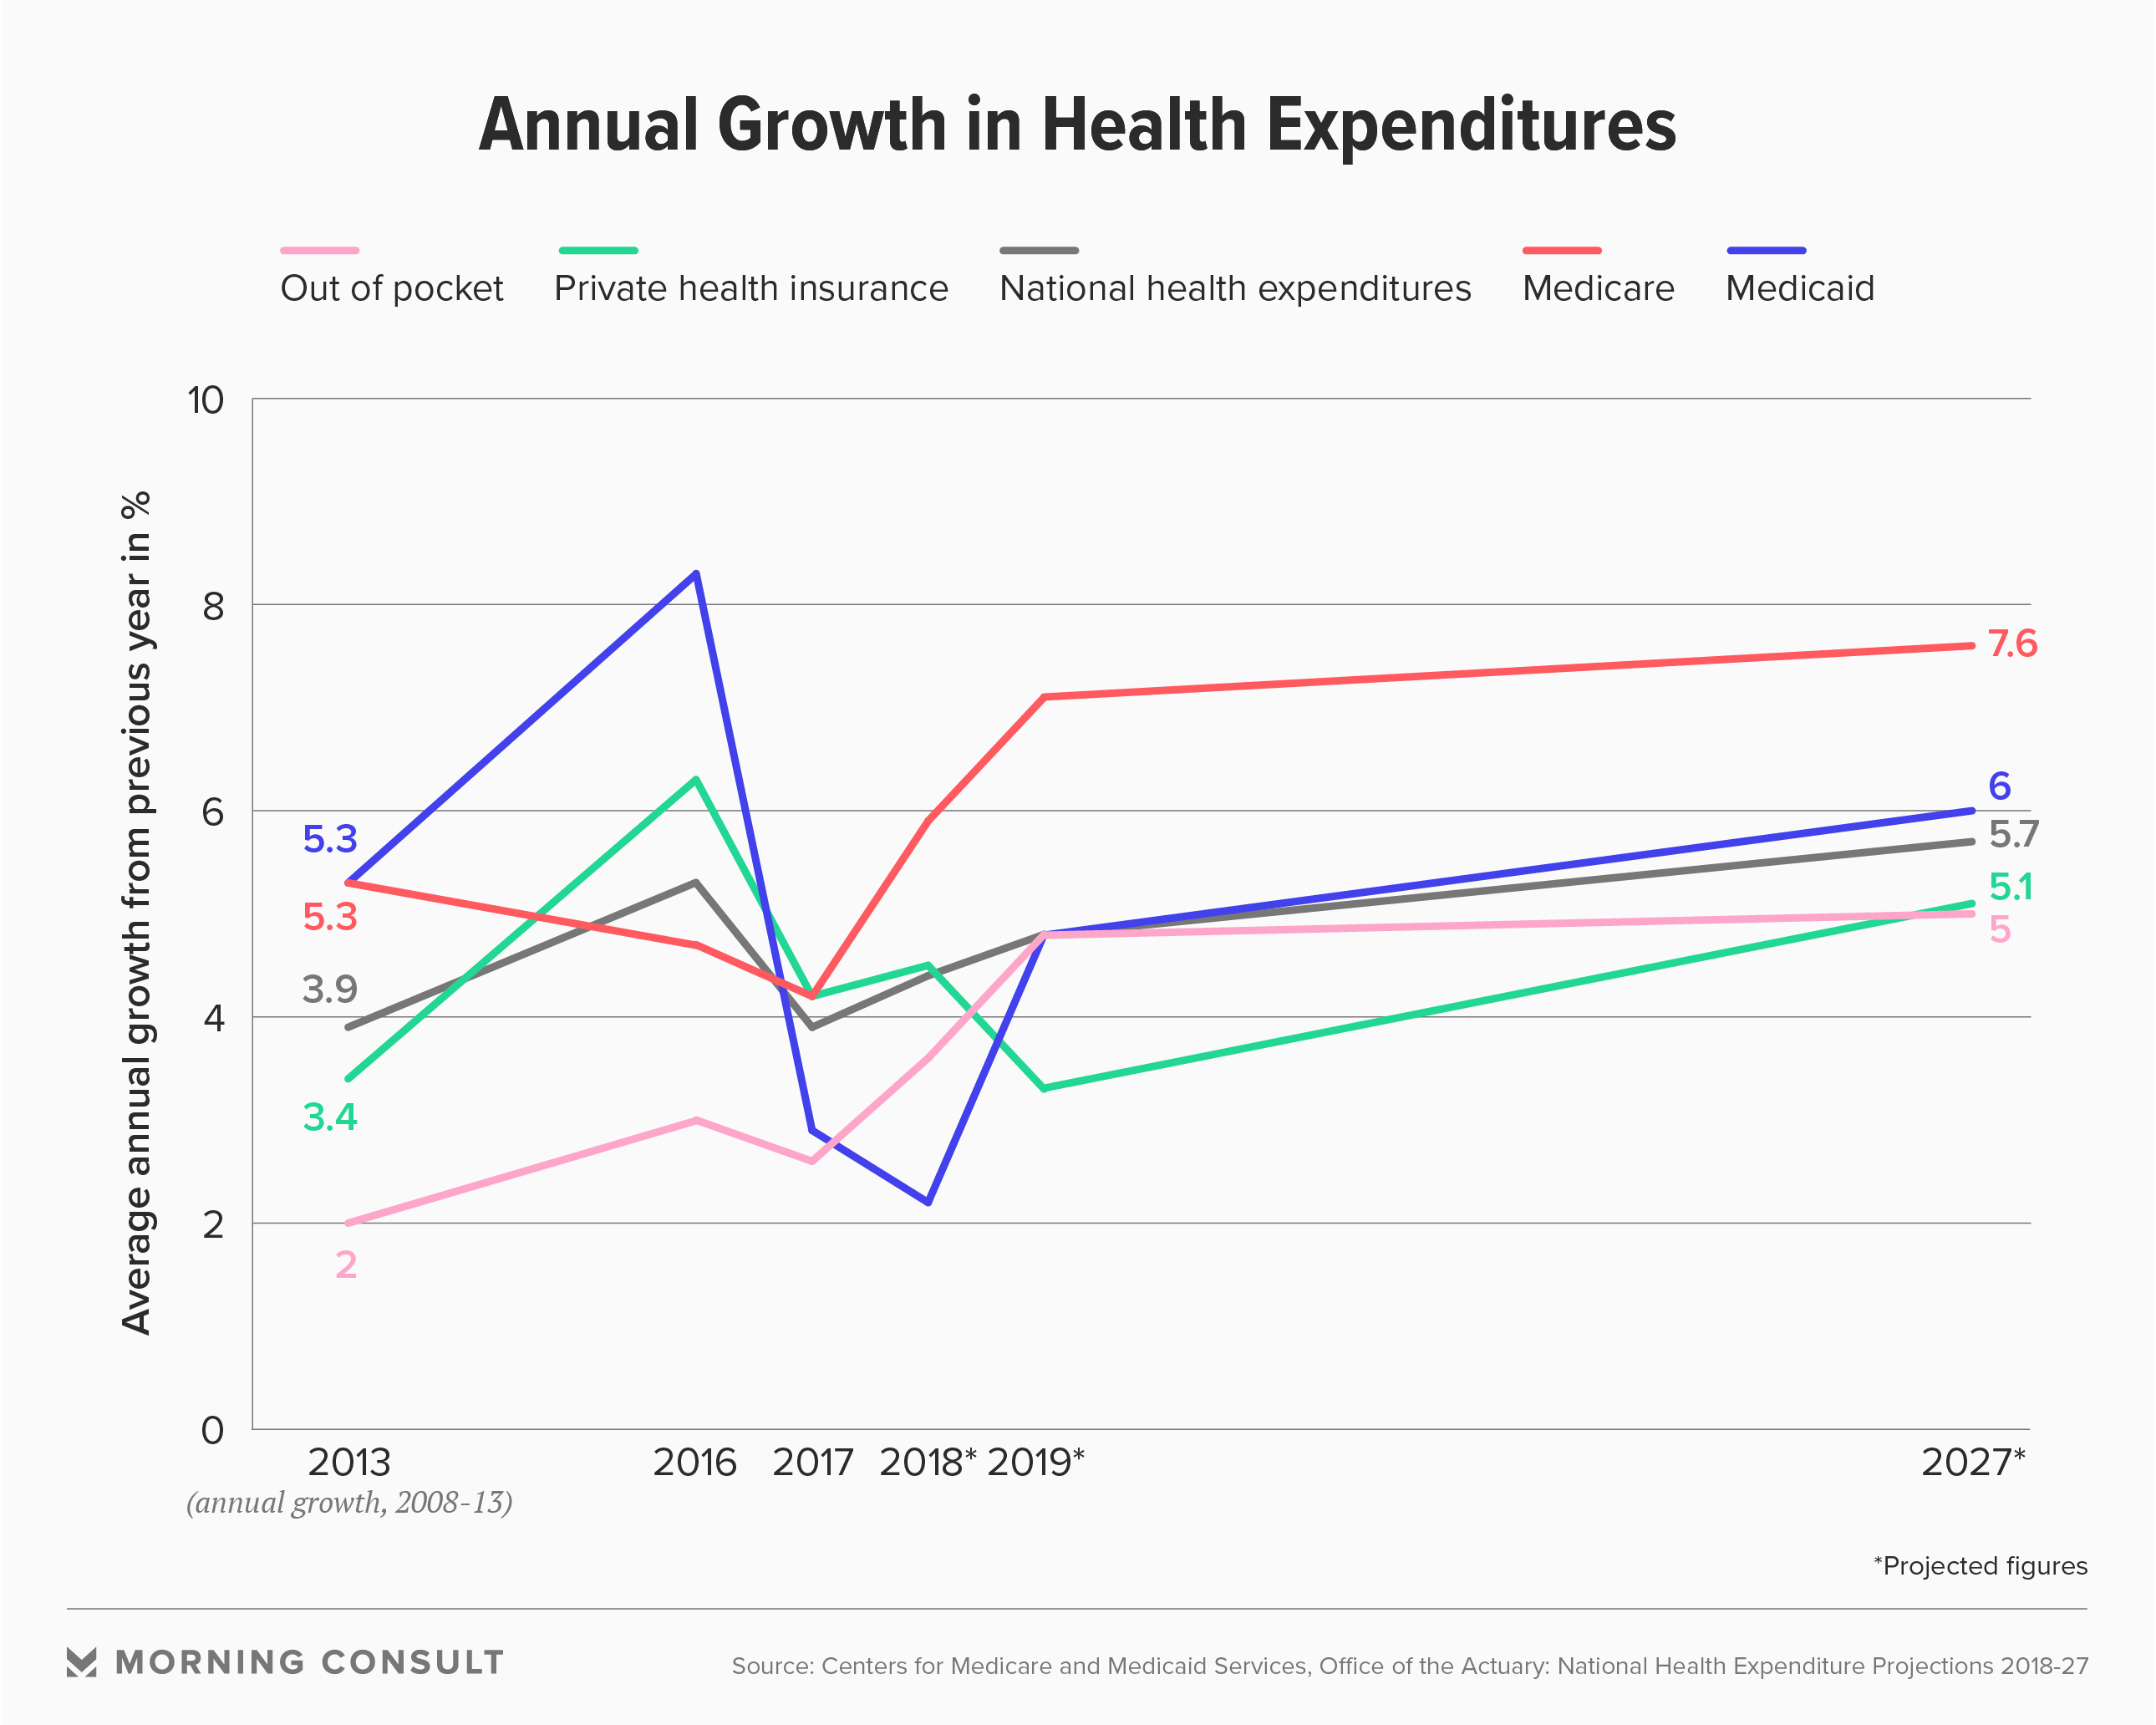 Cms Estimates Annual U S Health Care Spending To Hit 5 96 Trillion By 2027